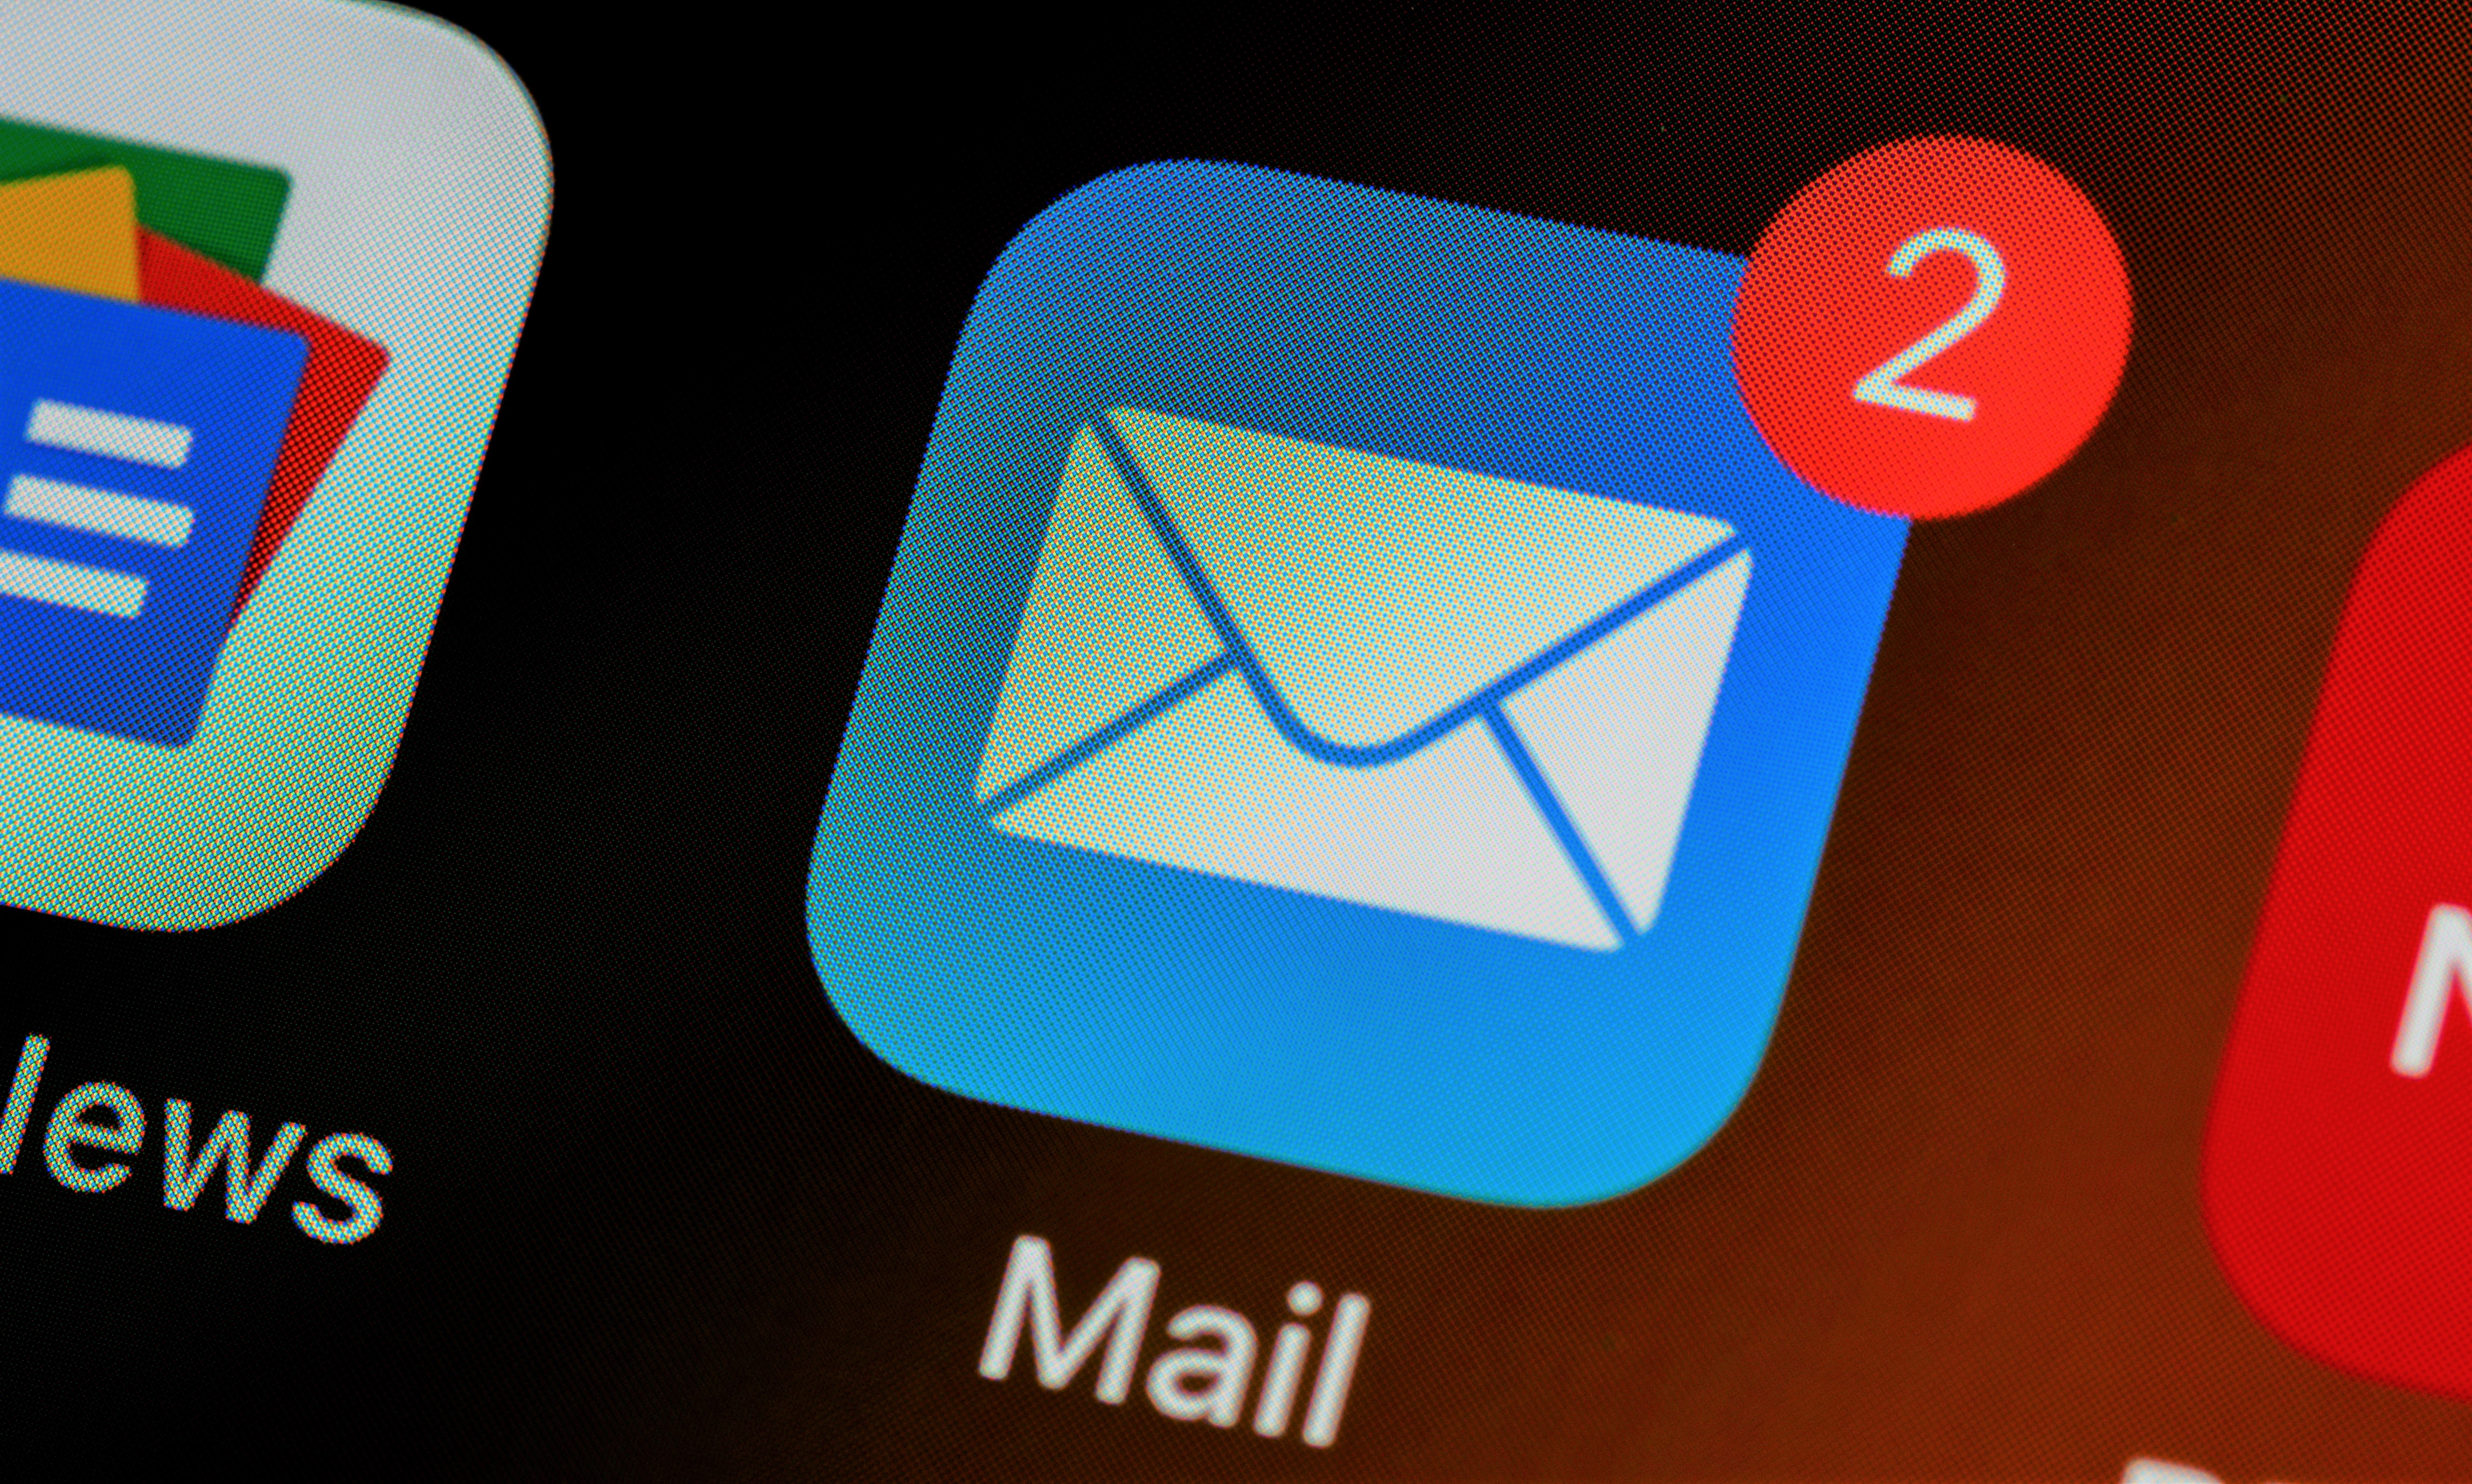 Photo of email icon on phone.